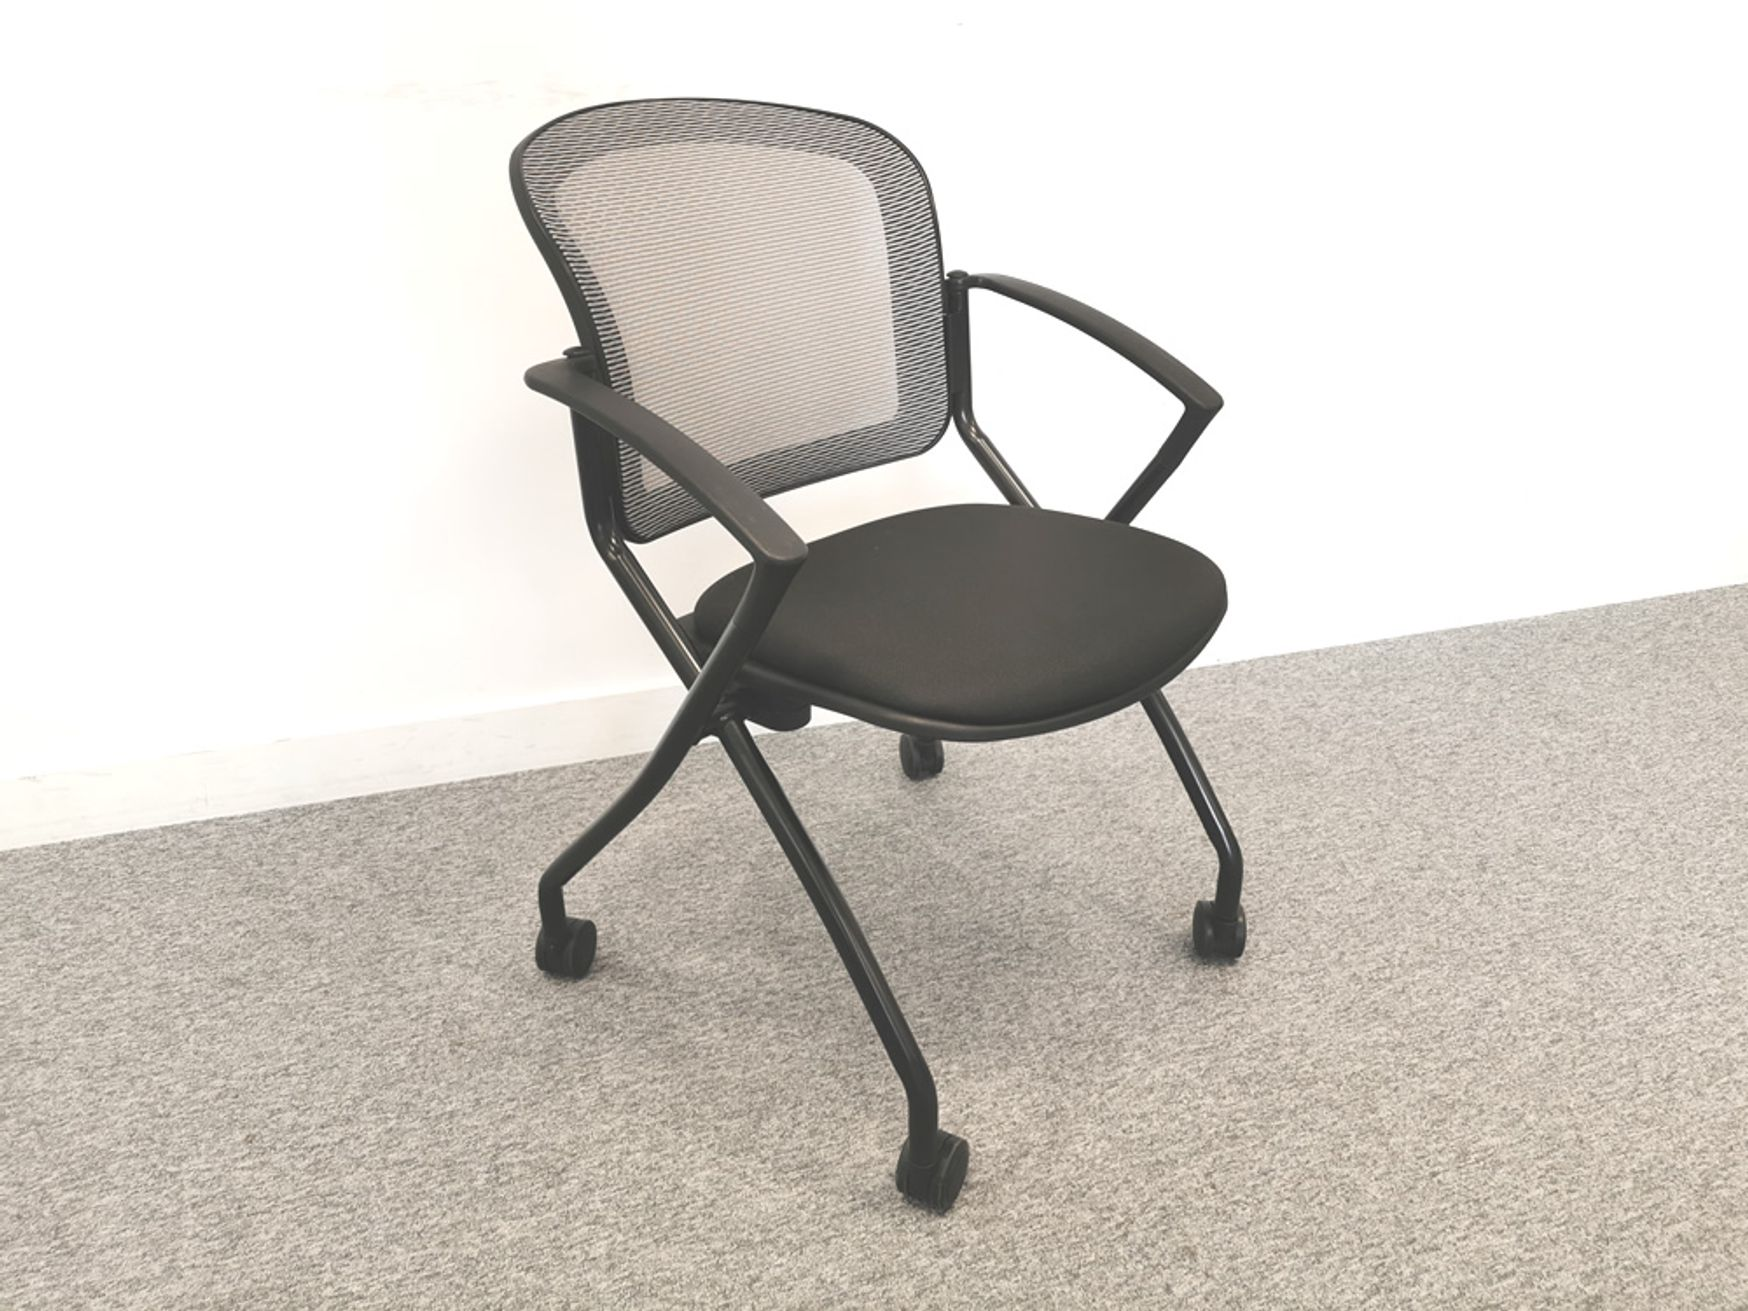 Used Open Plan 'Steal' Folding Chair on Wheels